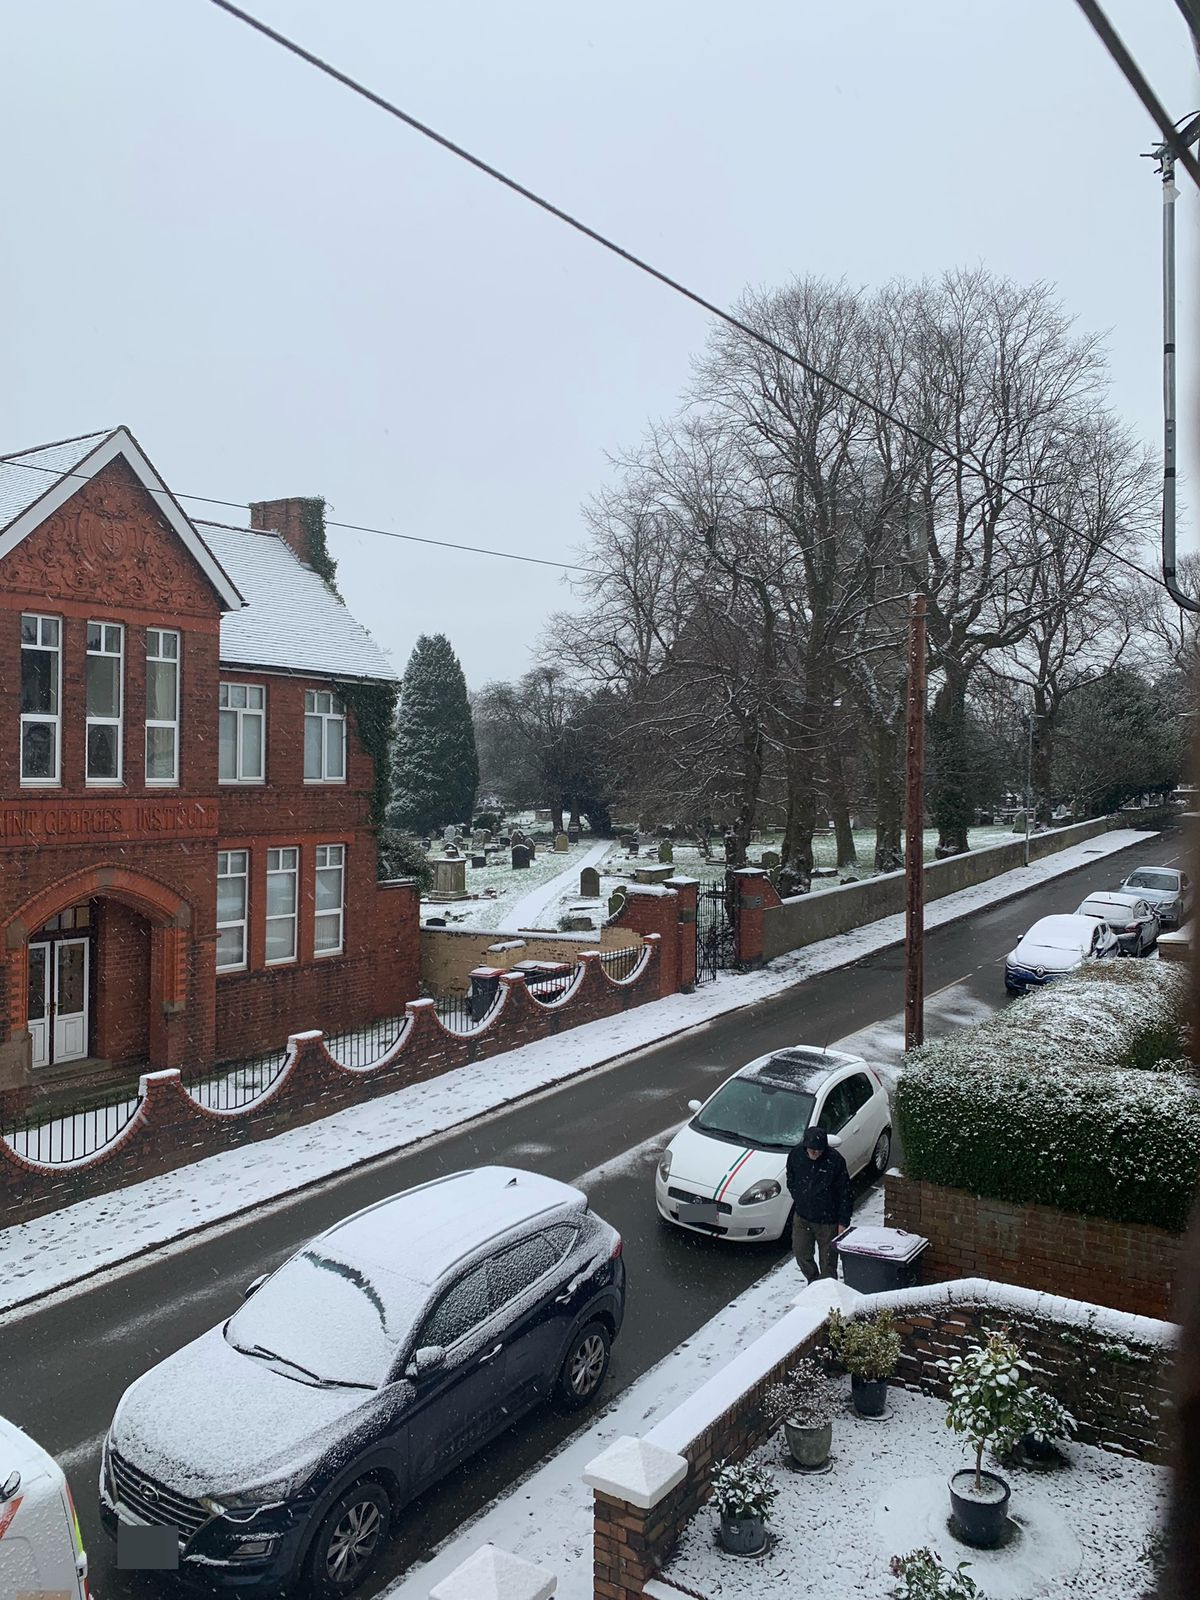 Snow falling in St Georges, Telford, today. Pic: Nigel Martin